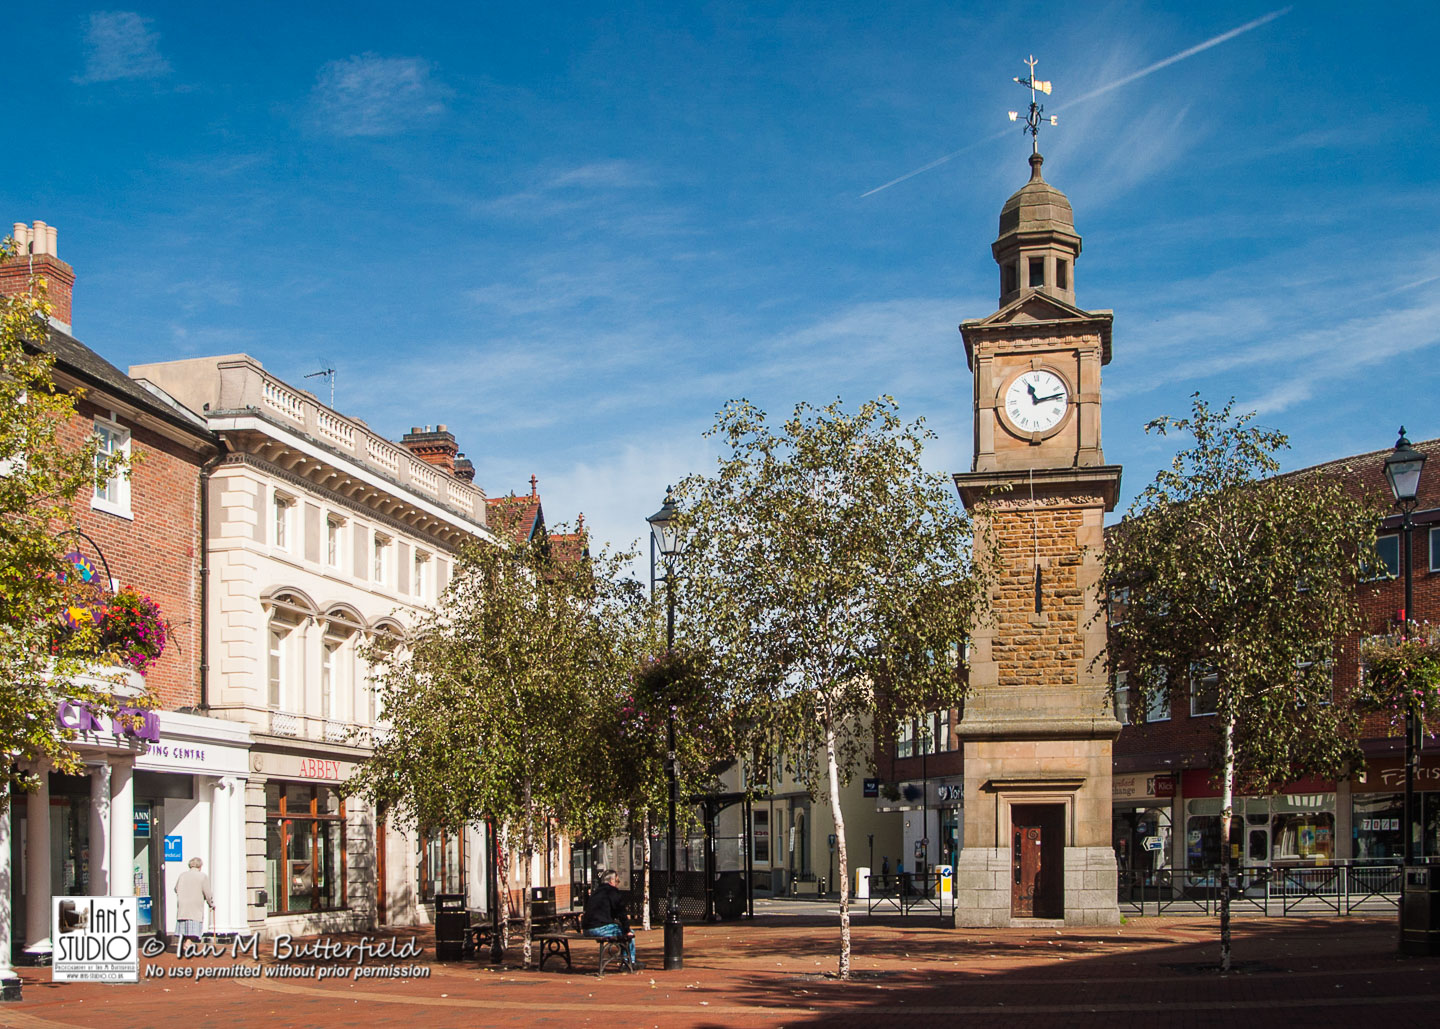 SALE 18 Mar 2019: The Clock Tower, Rugby Town Centre, UK – THIRD Sale